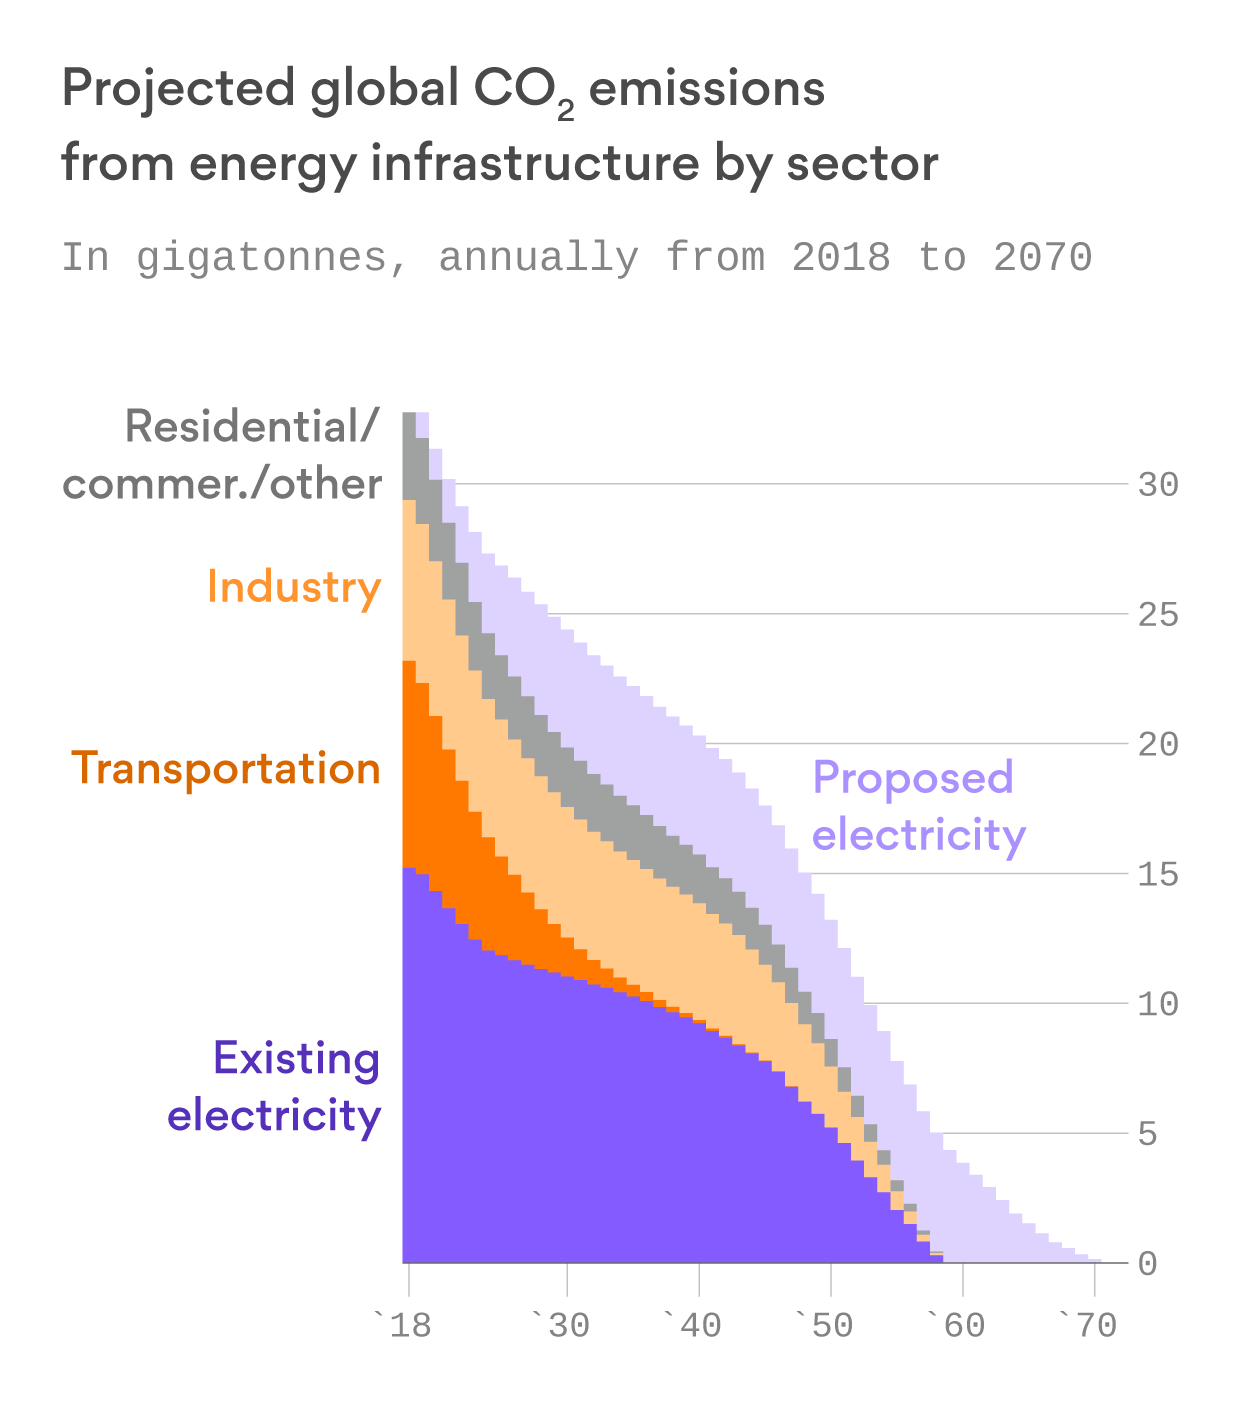 Existing energy infrastructure could send global temperatures 1.5°C above preindustrial levels